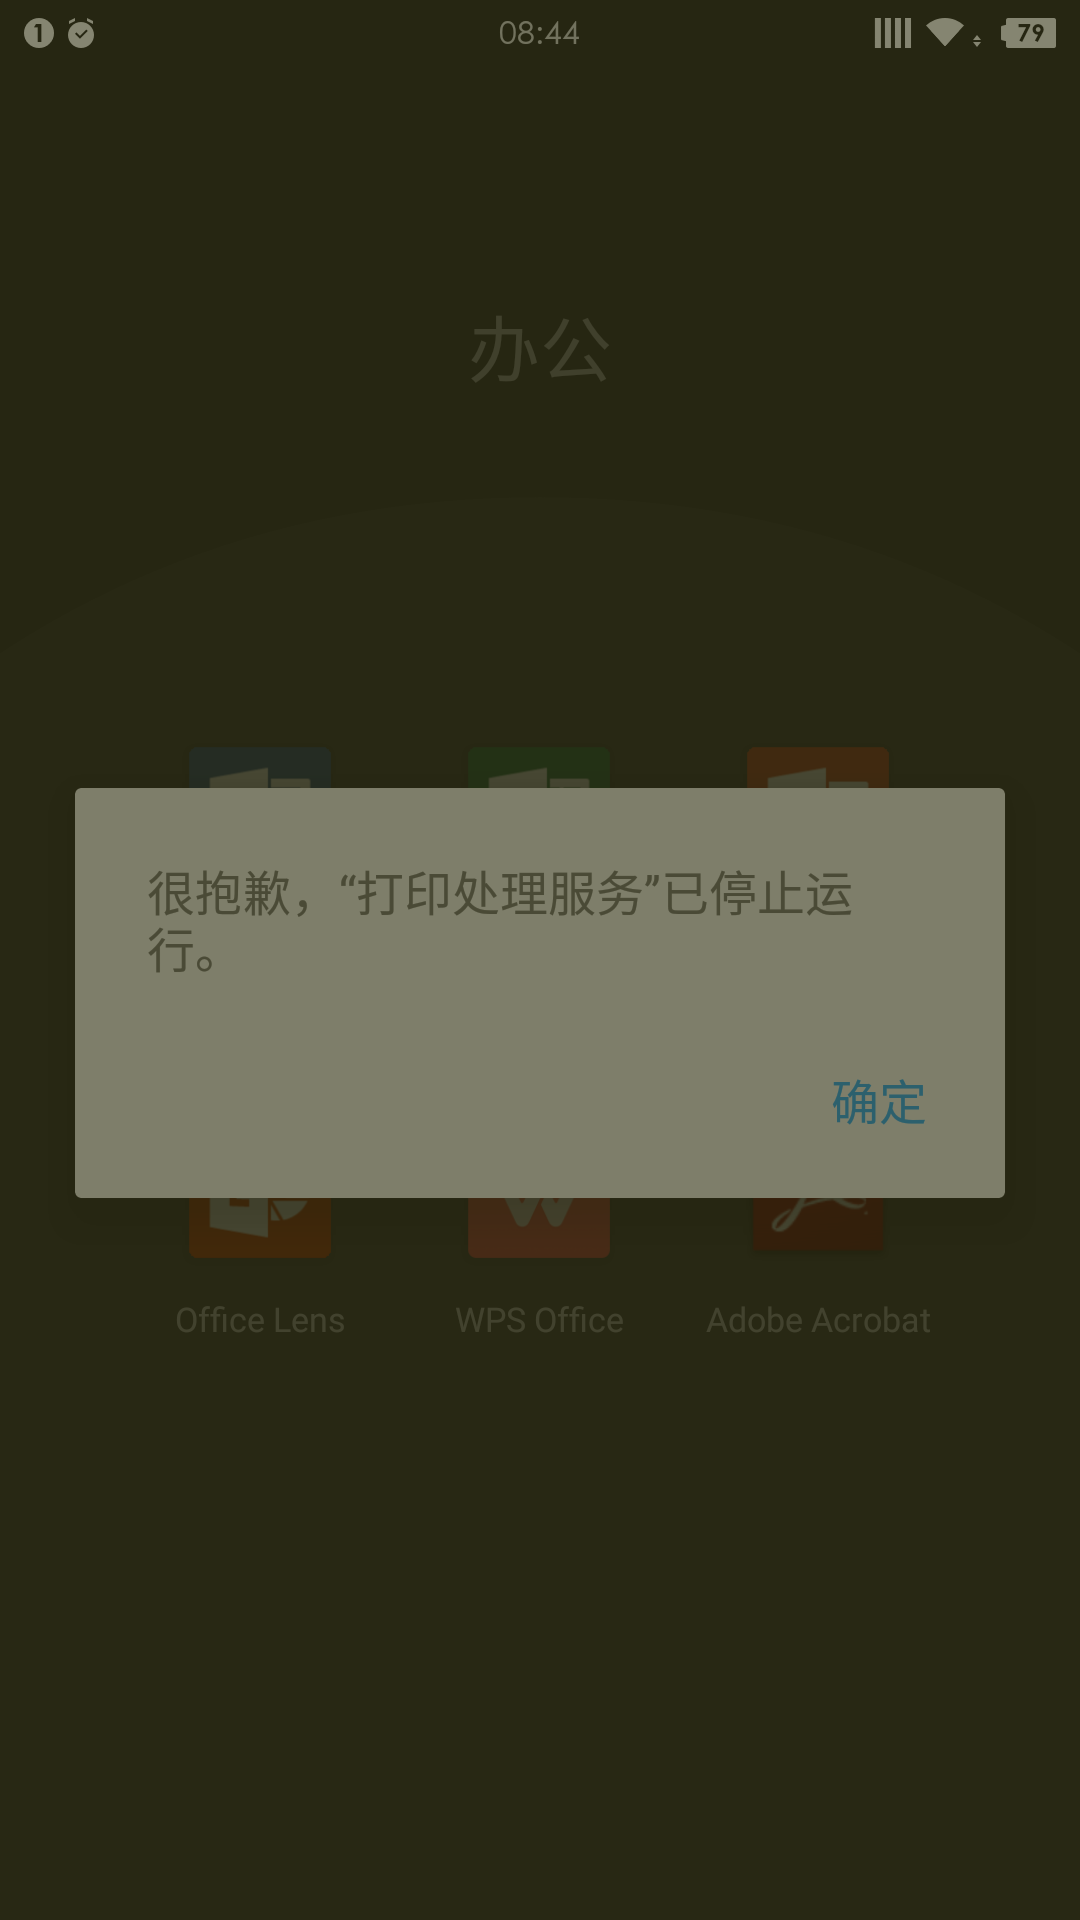 Screenshot_2015-10-15-08-44-25.png